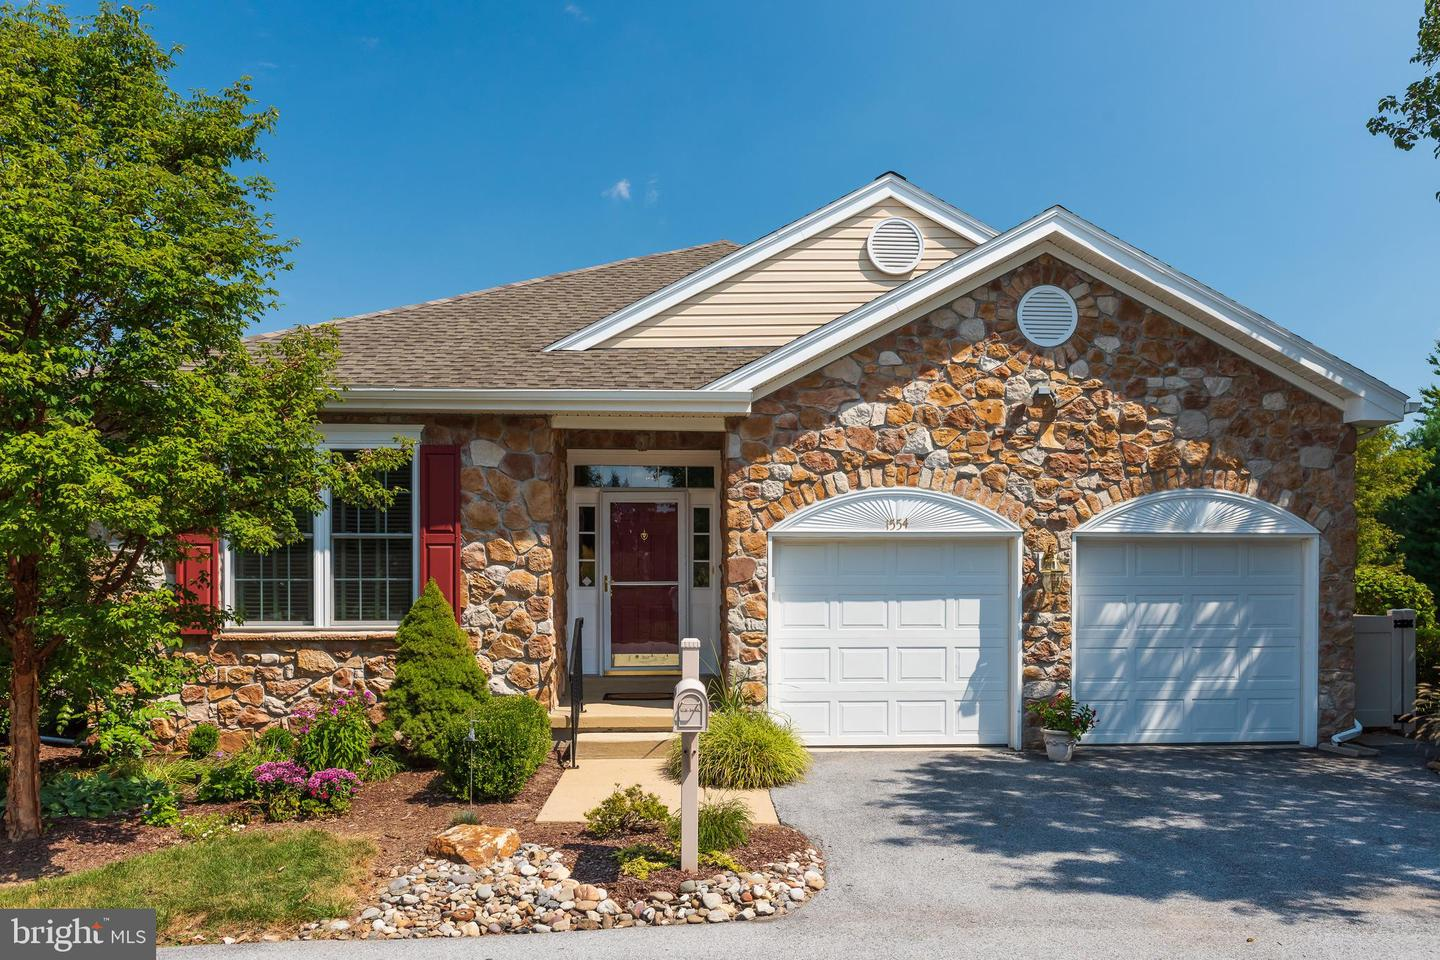 1554 Ulster Circle West Chester, PA 19380